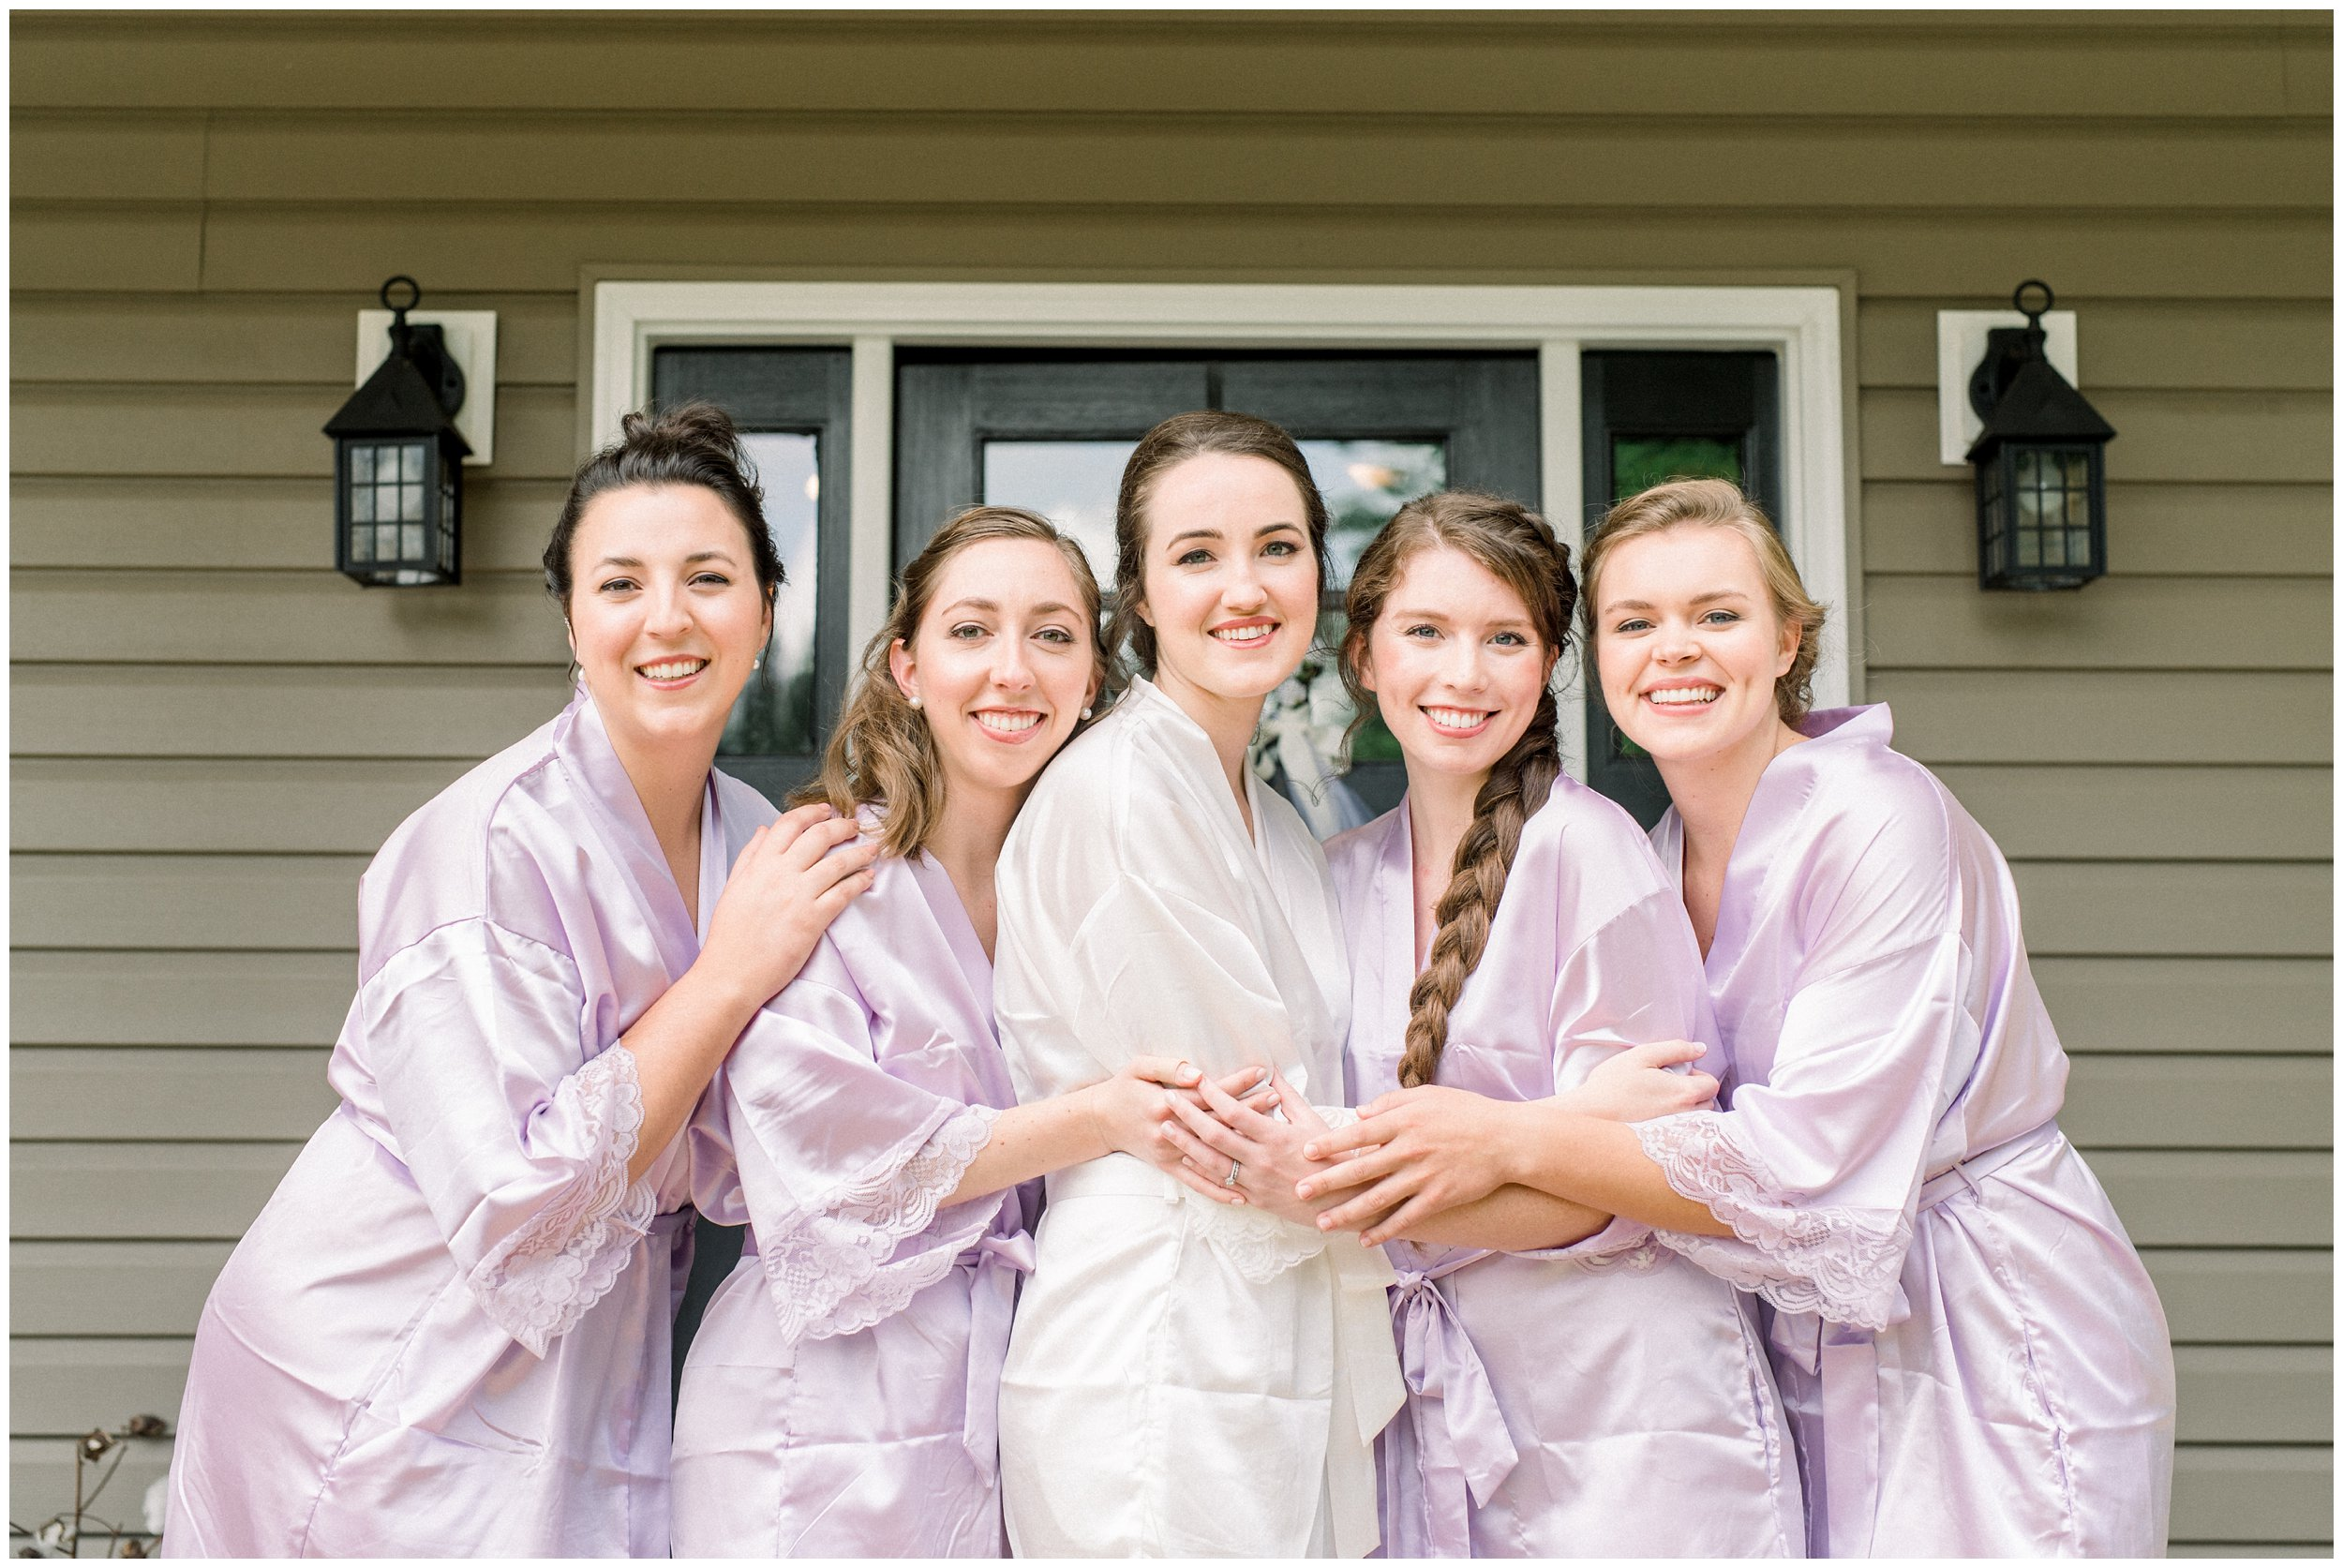 bridal party in lavender robes with bride